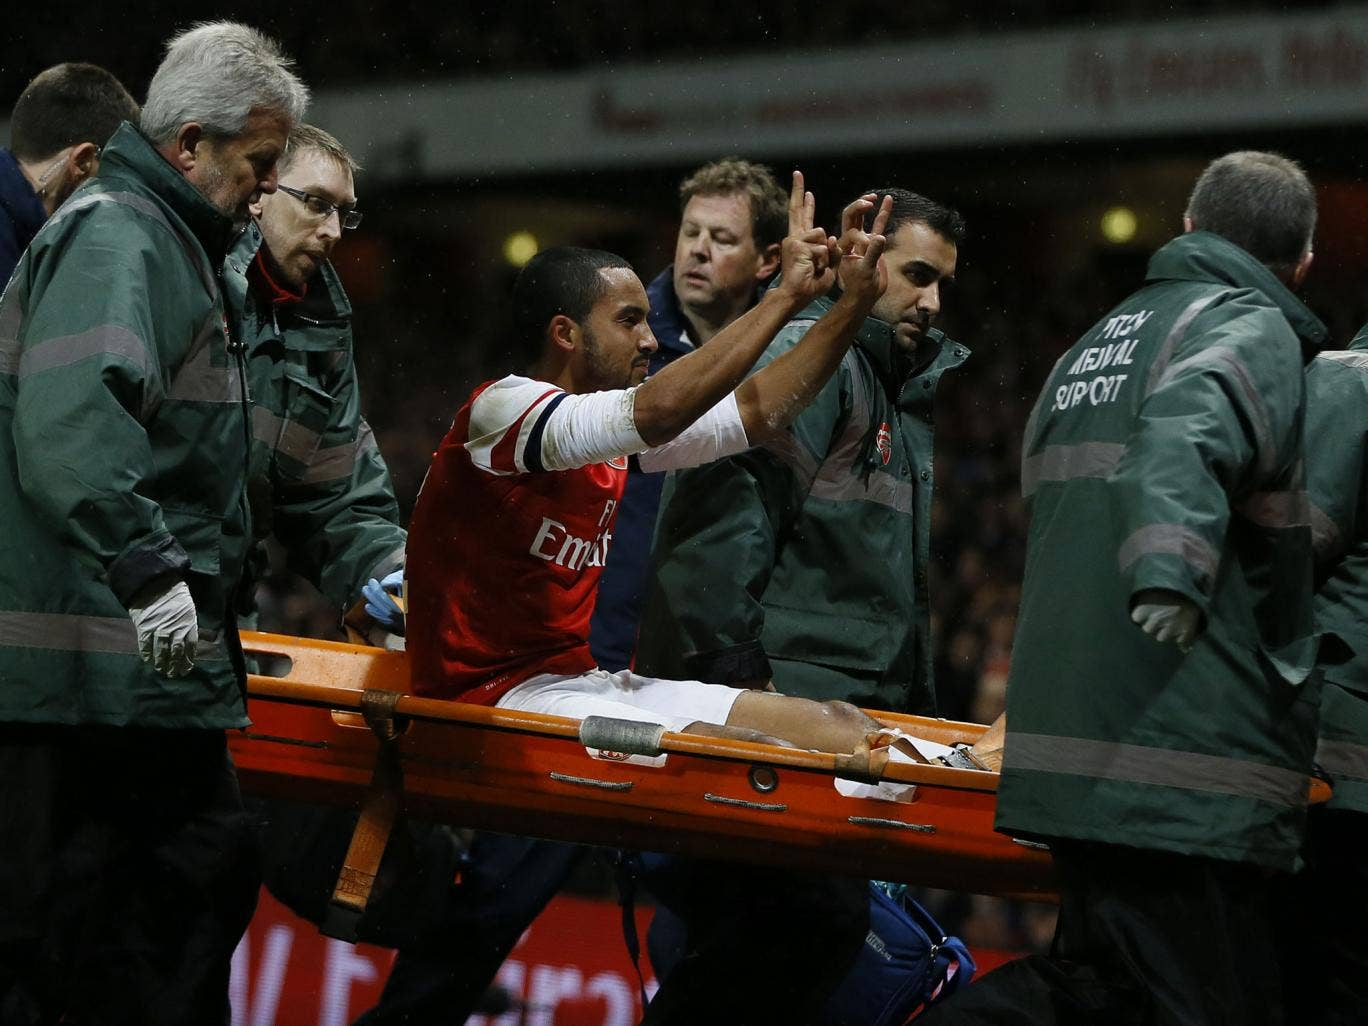 Arsenal's Theo Walcott makes the '2-0' gesture to Spurs fans as he is carried off